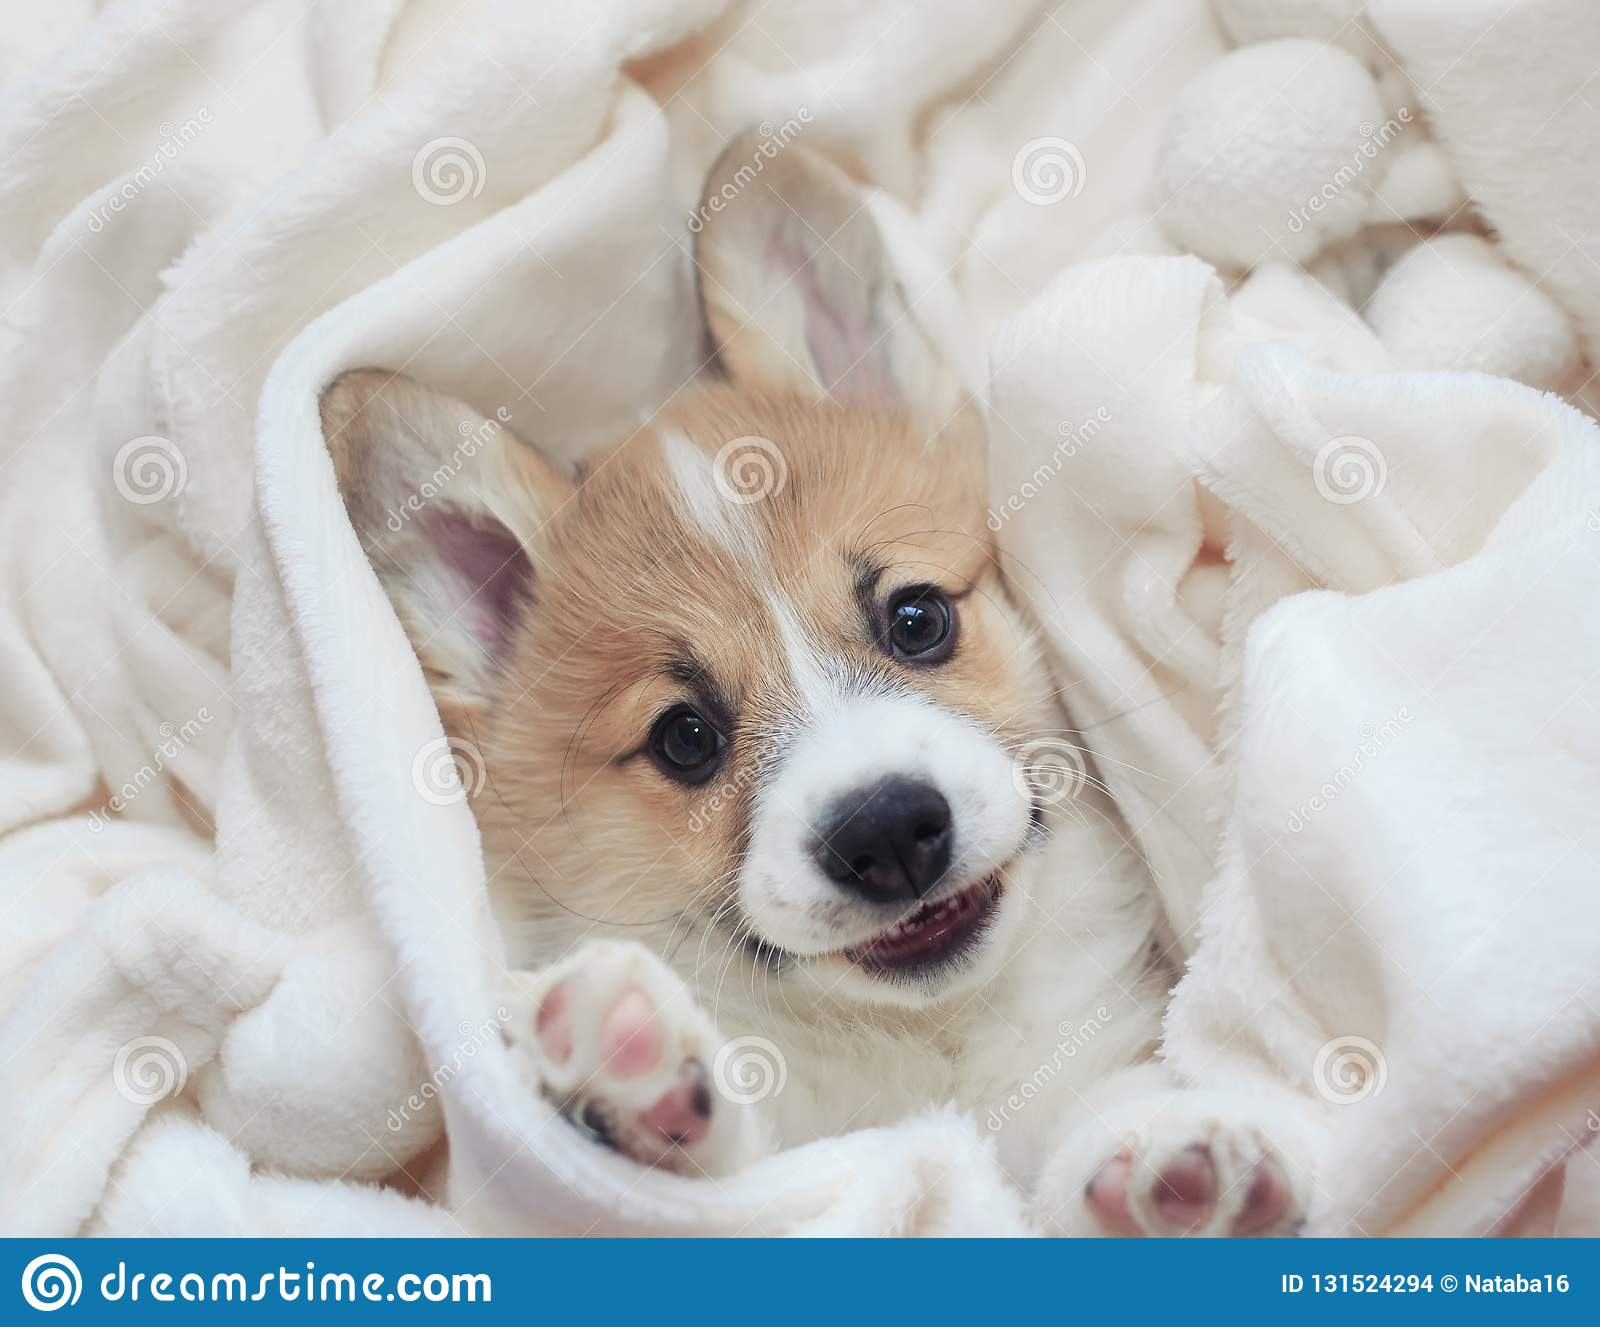 homemade corgi puppy lies in a white fluffy blanket funny sticking out his face and paws